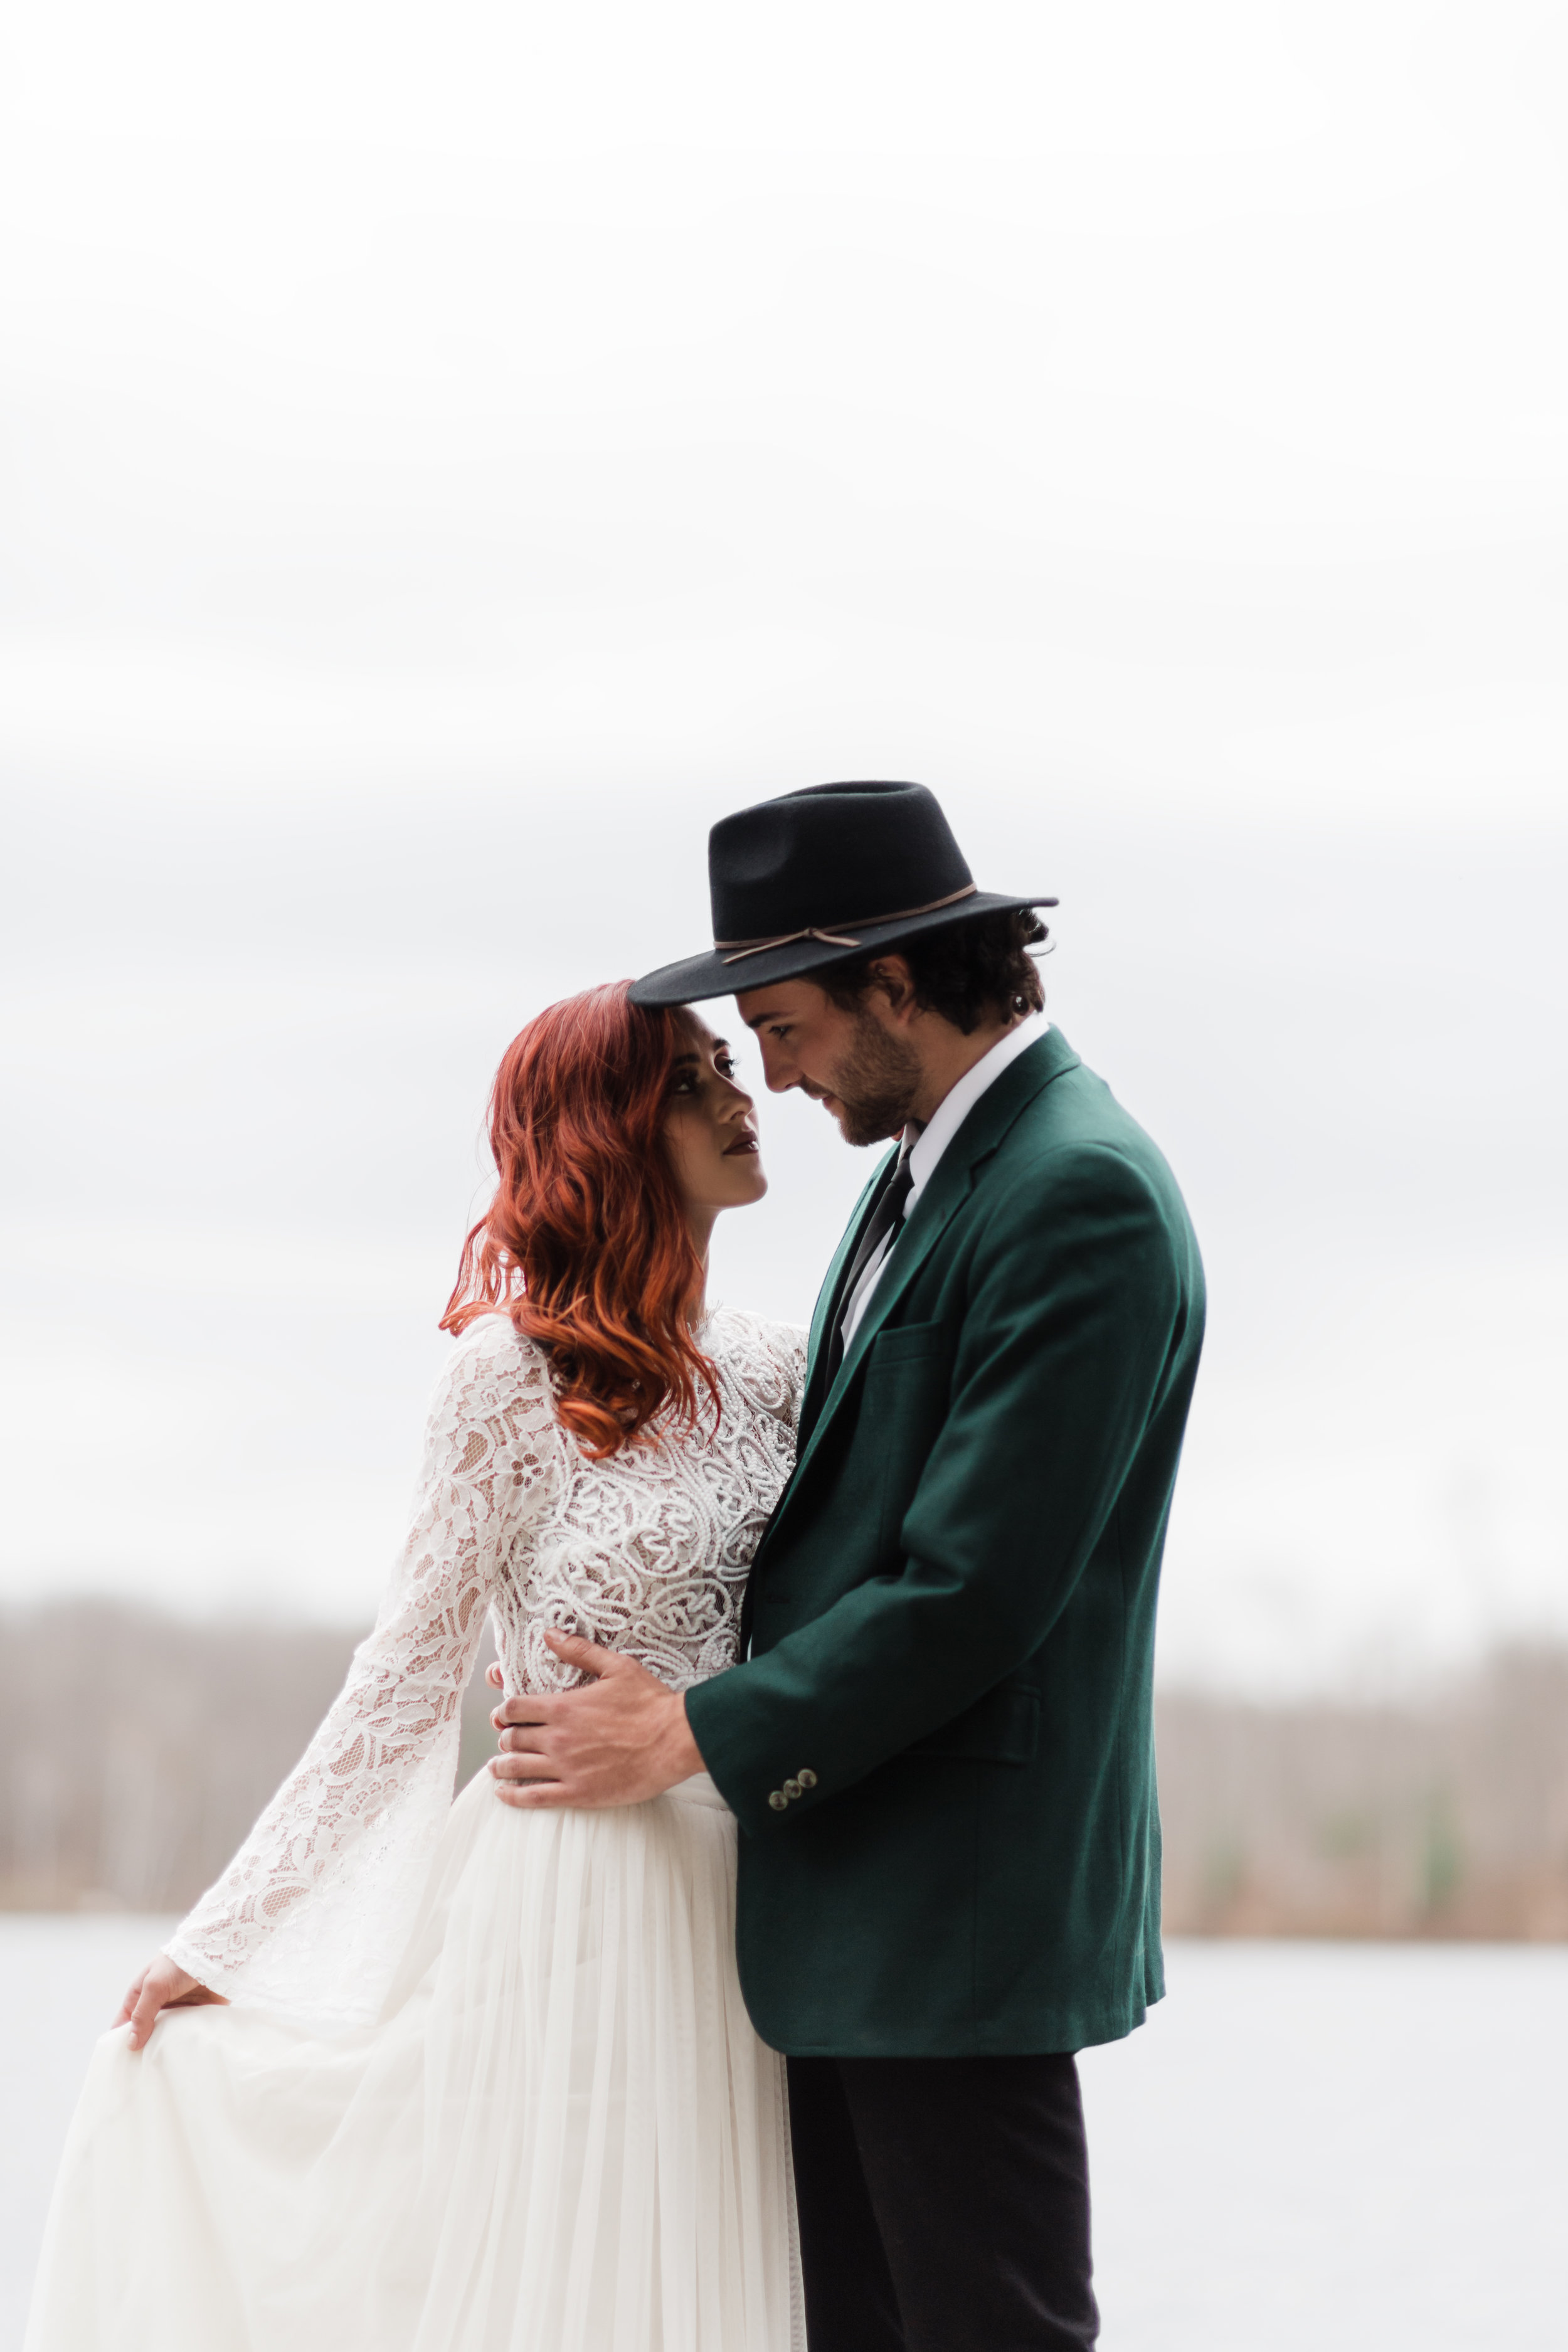 Bride in lace and beaded crop top and hand holding flowing skirt gazing into the eyes of groom in green jacket and black fedora.